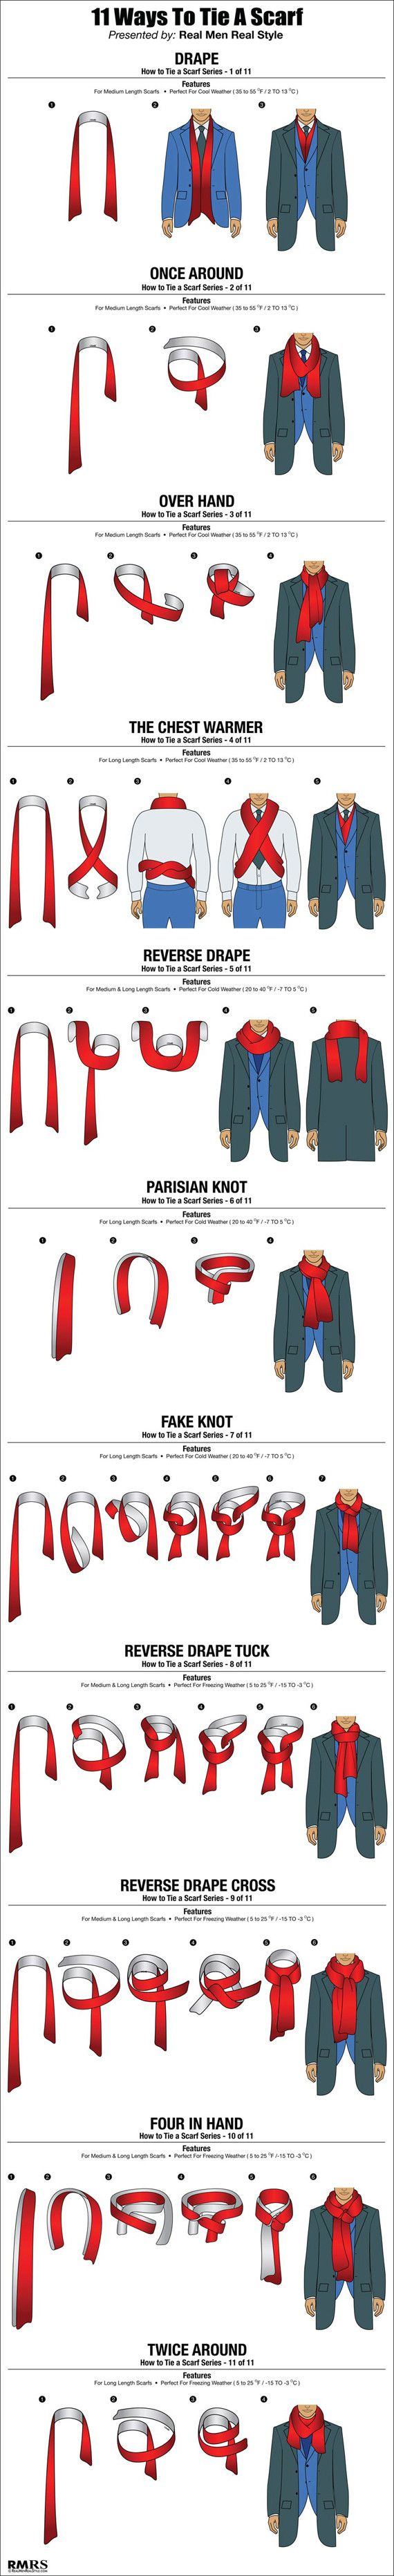 How To Tie Scarf For Men Good Keep Around My Dude Style Trinity Knot Diagram